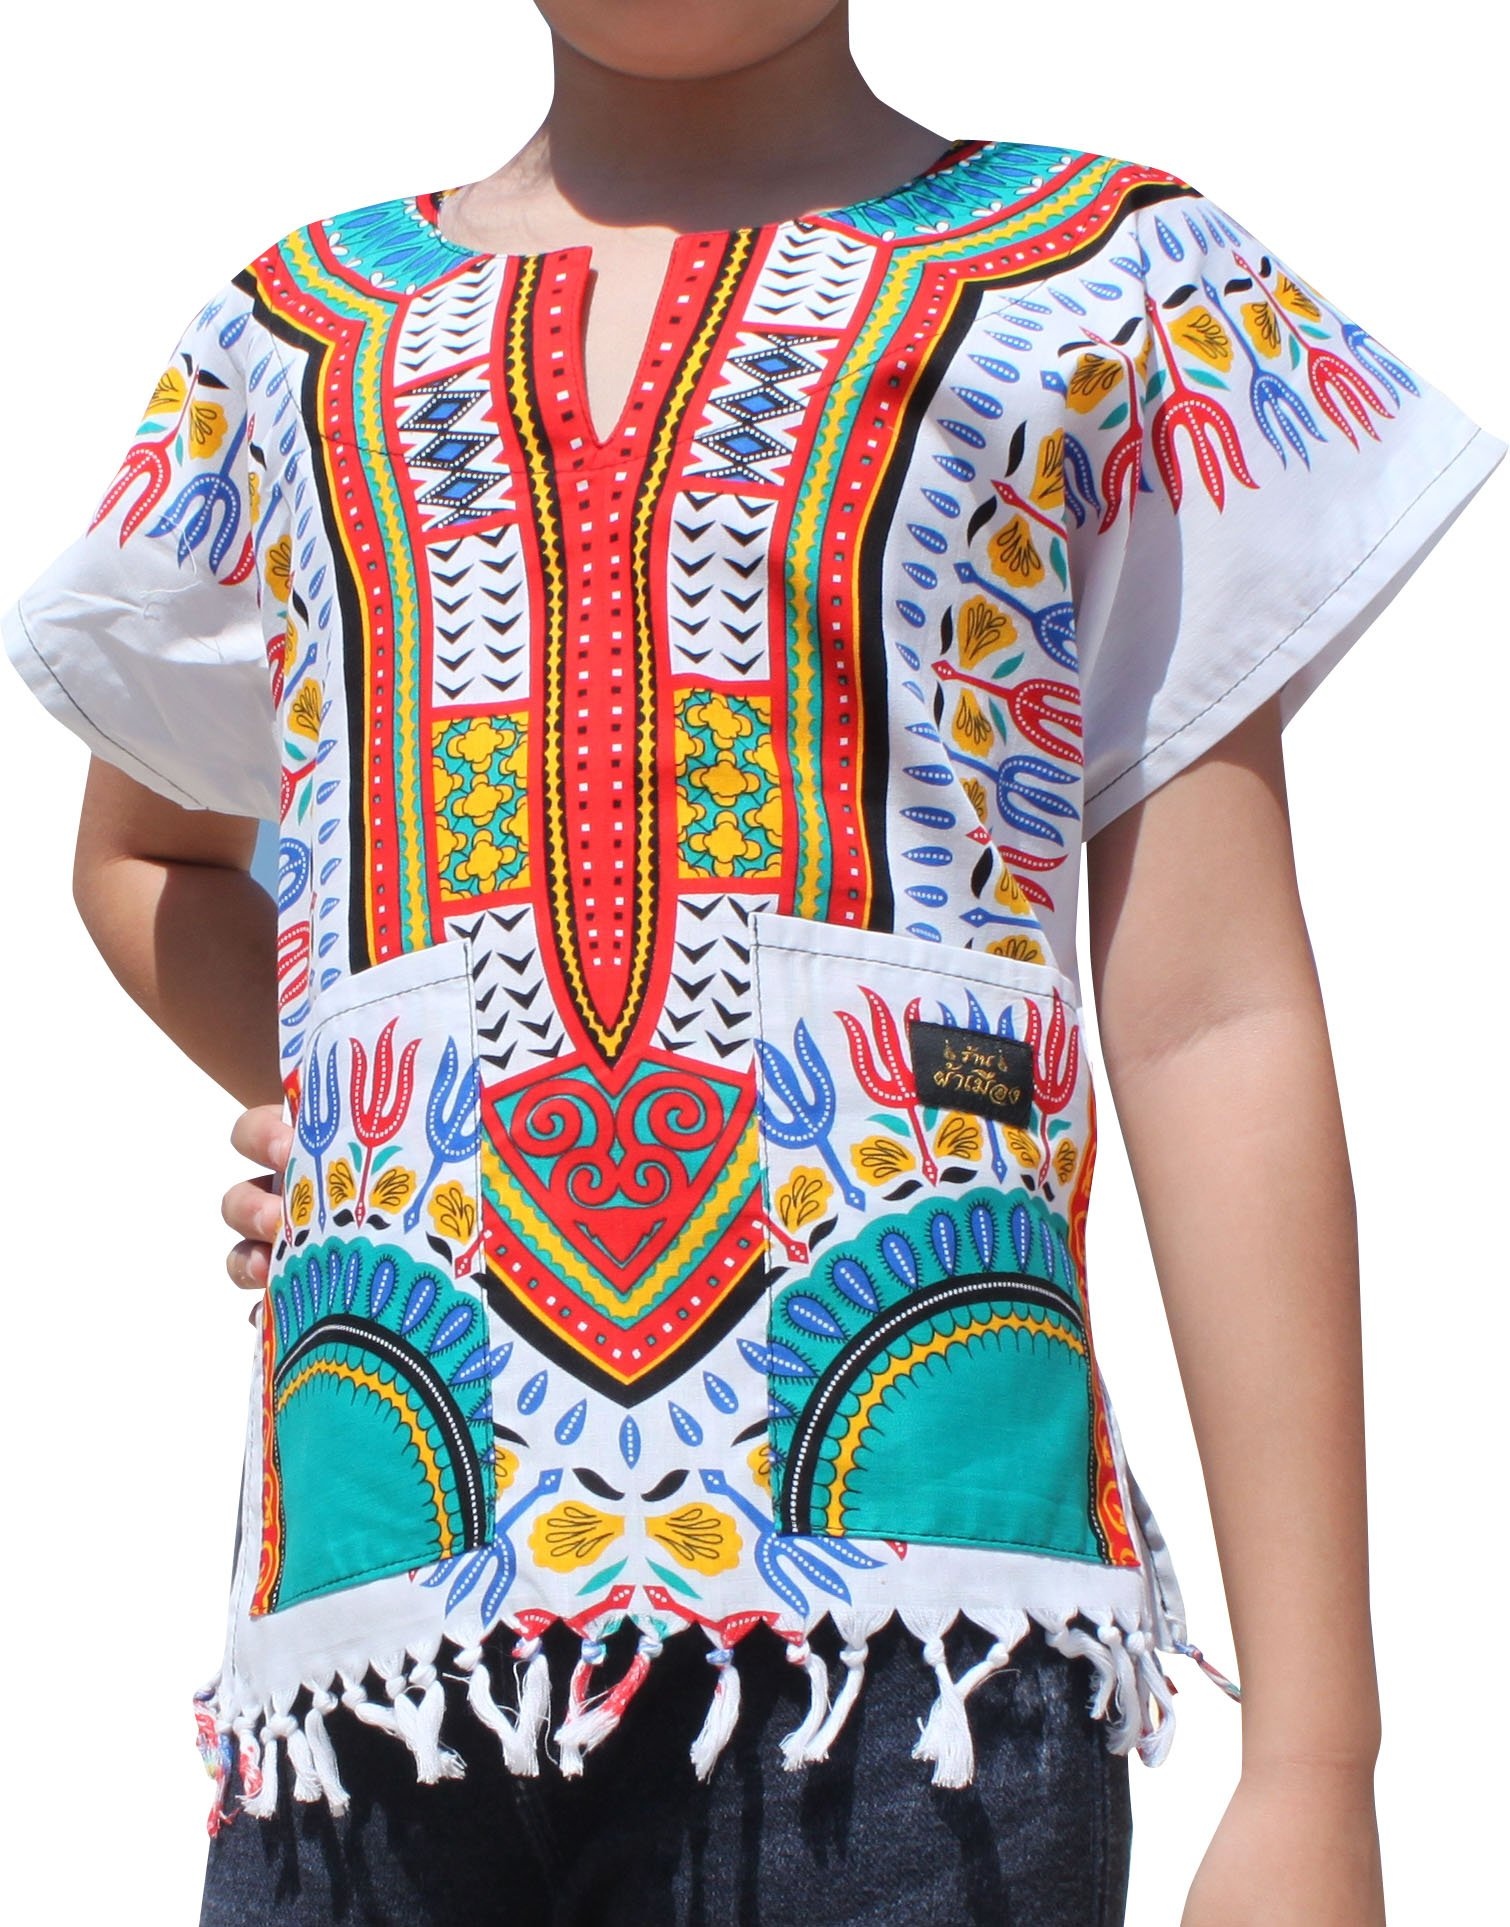 Raan Pah Muang Branded Cotton Childs Dashiki Shirt Tassels and Pockets White Tone, 8-10 Years, White/Red